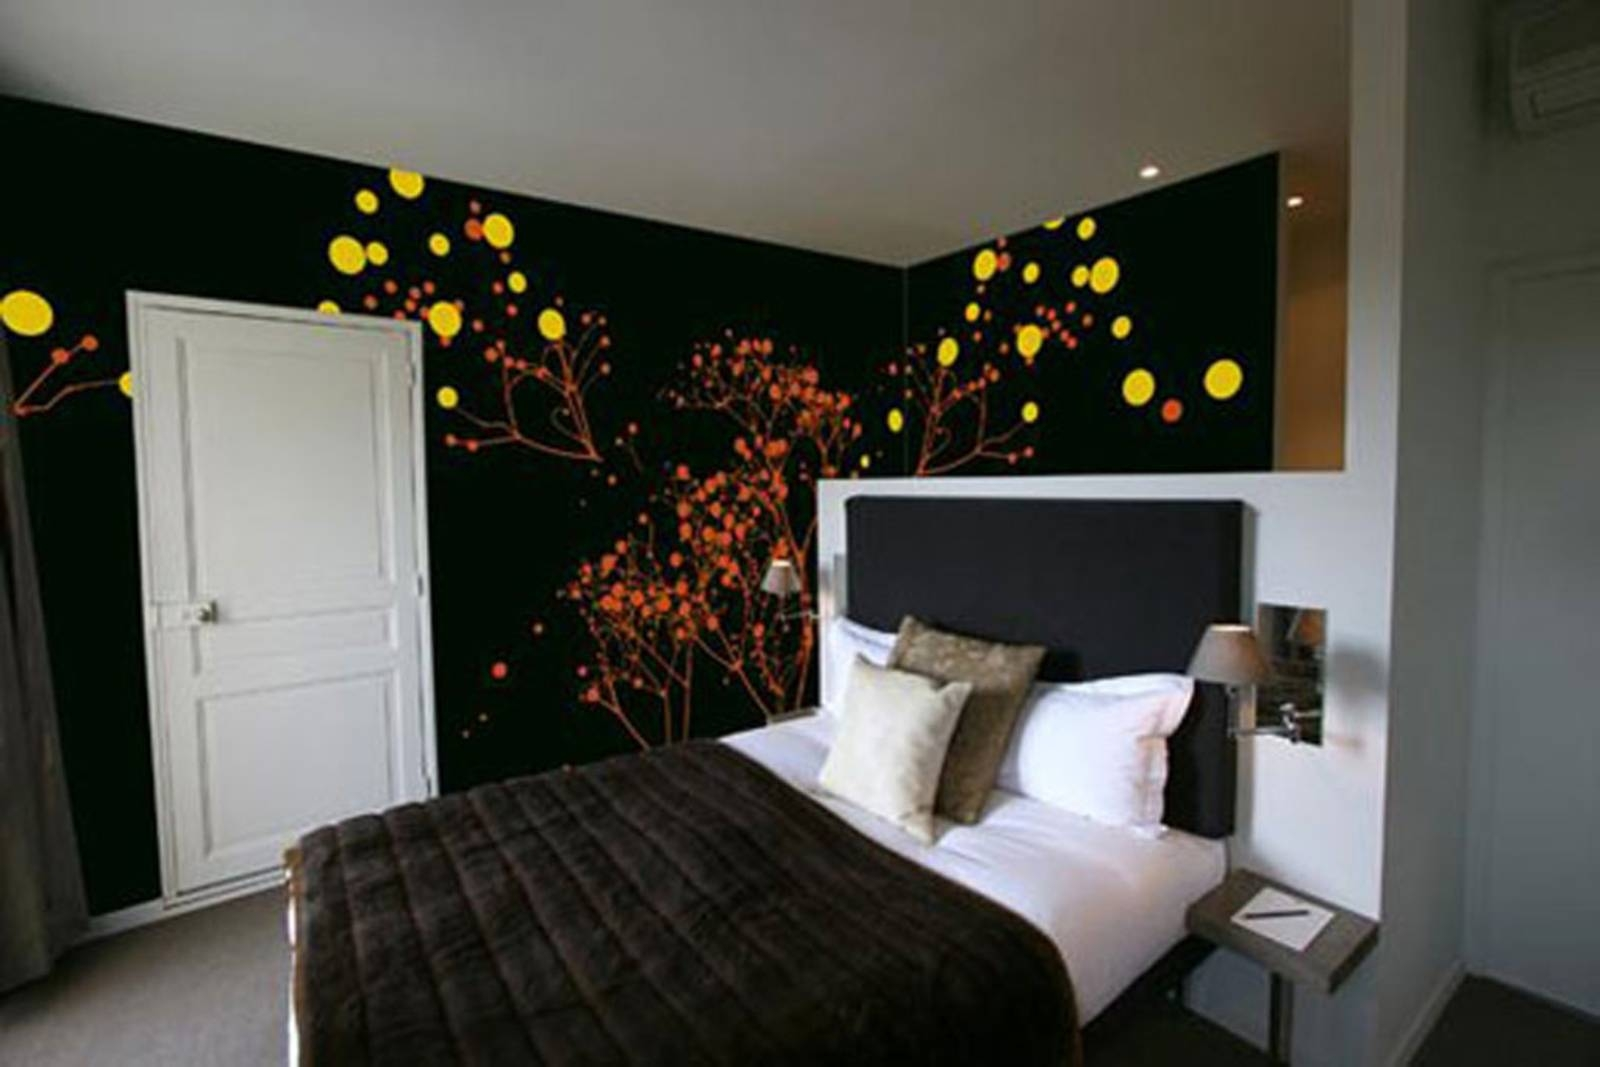 Stunning Diy Bedroom Wall Decor On With Hd Resolution 1024X1024 Inside Most Popular Bed Wall Art (View 19 of 25)